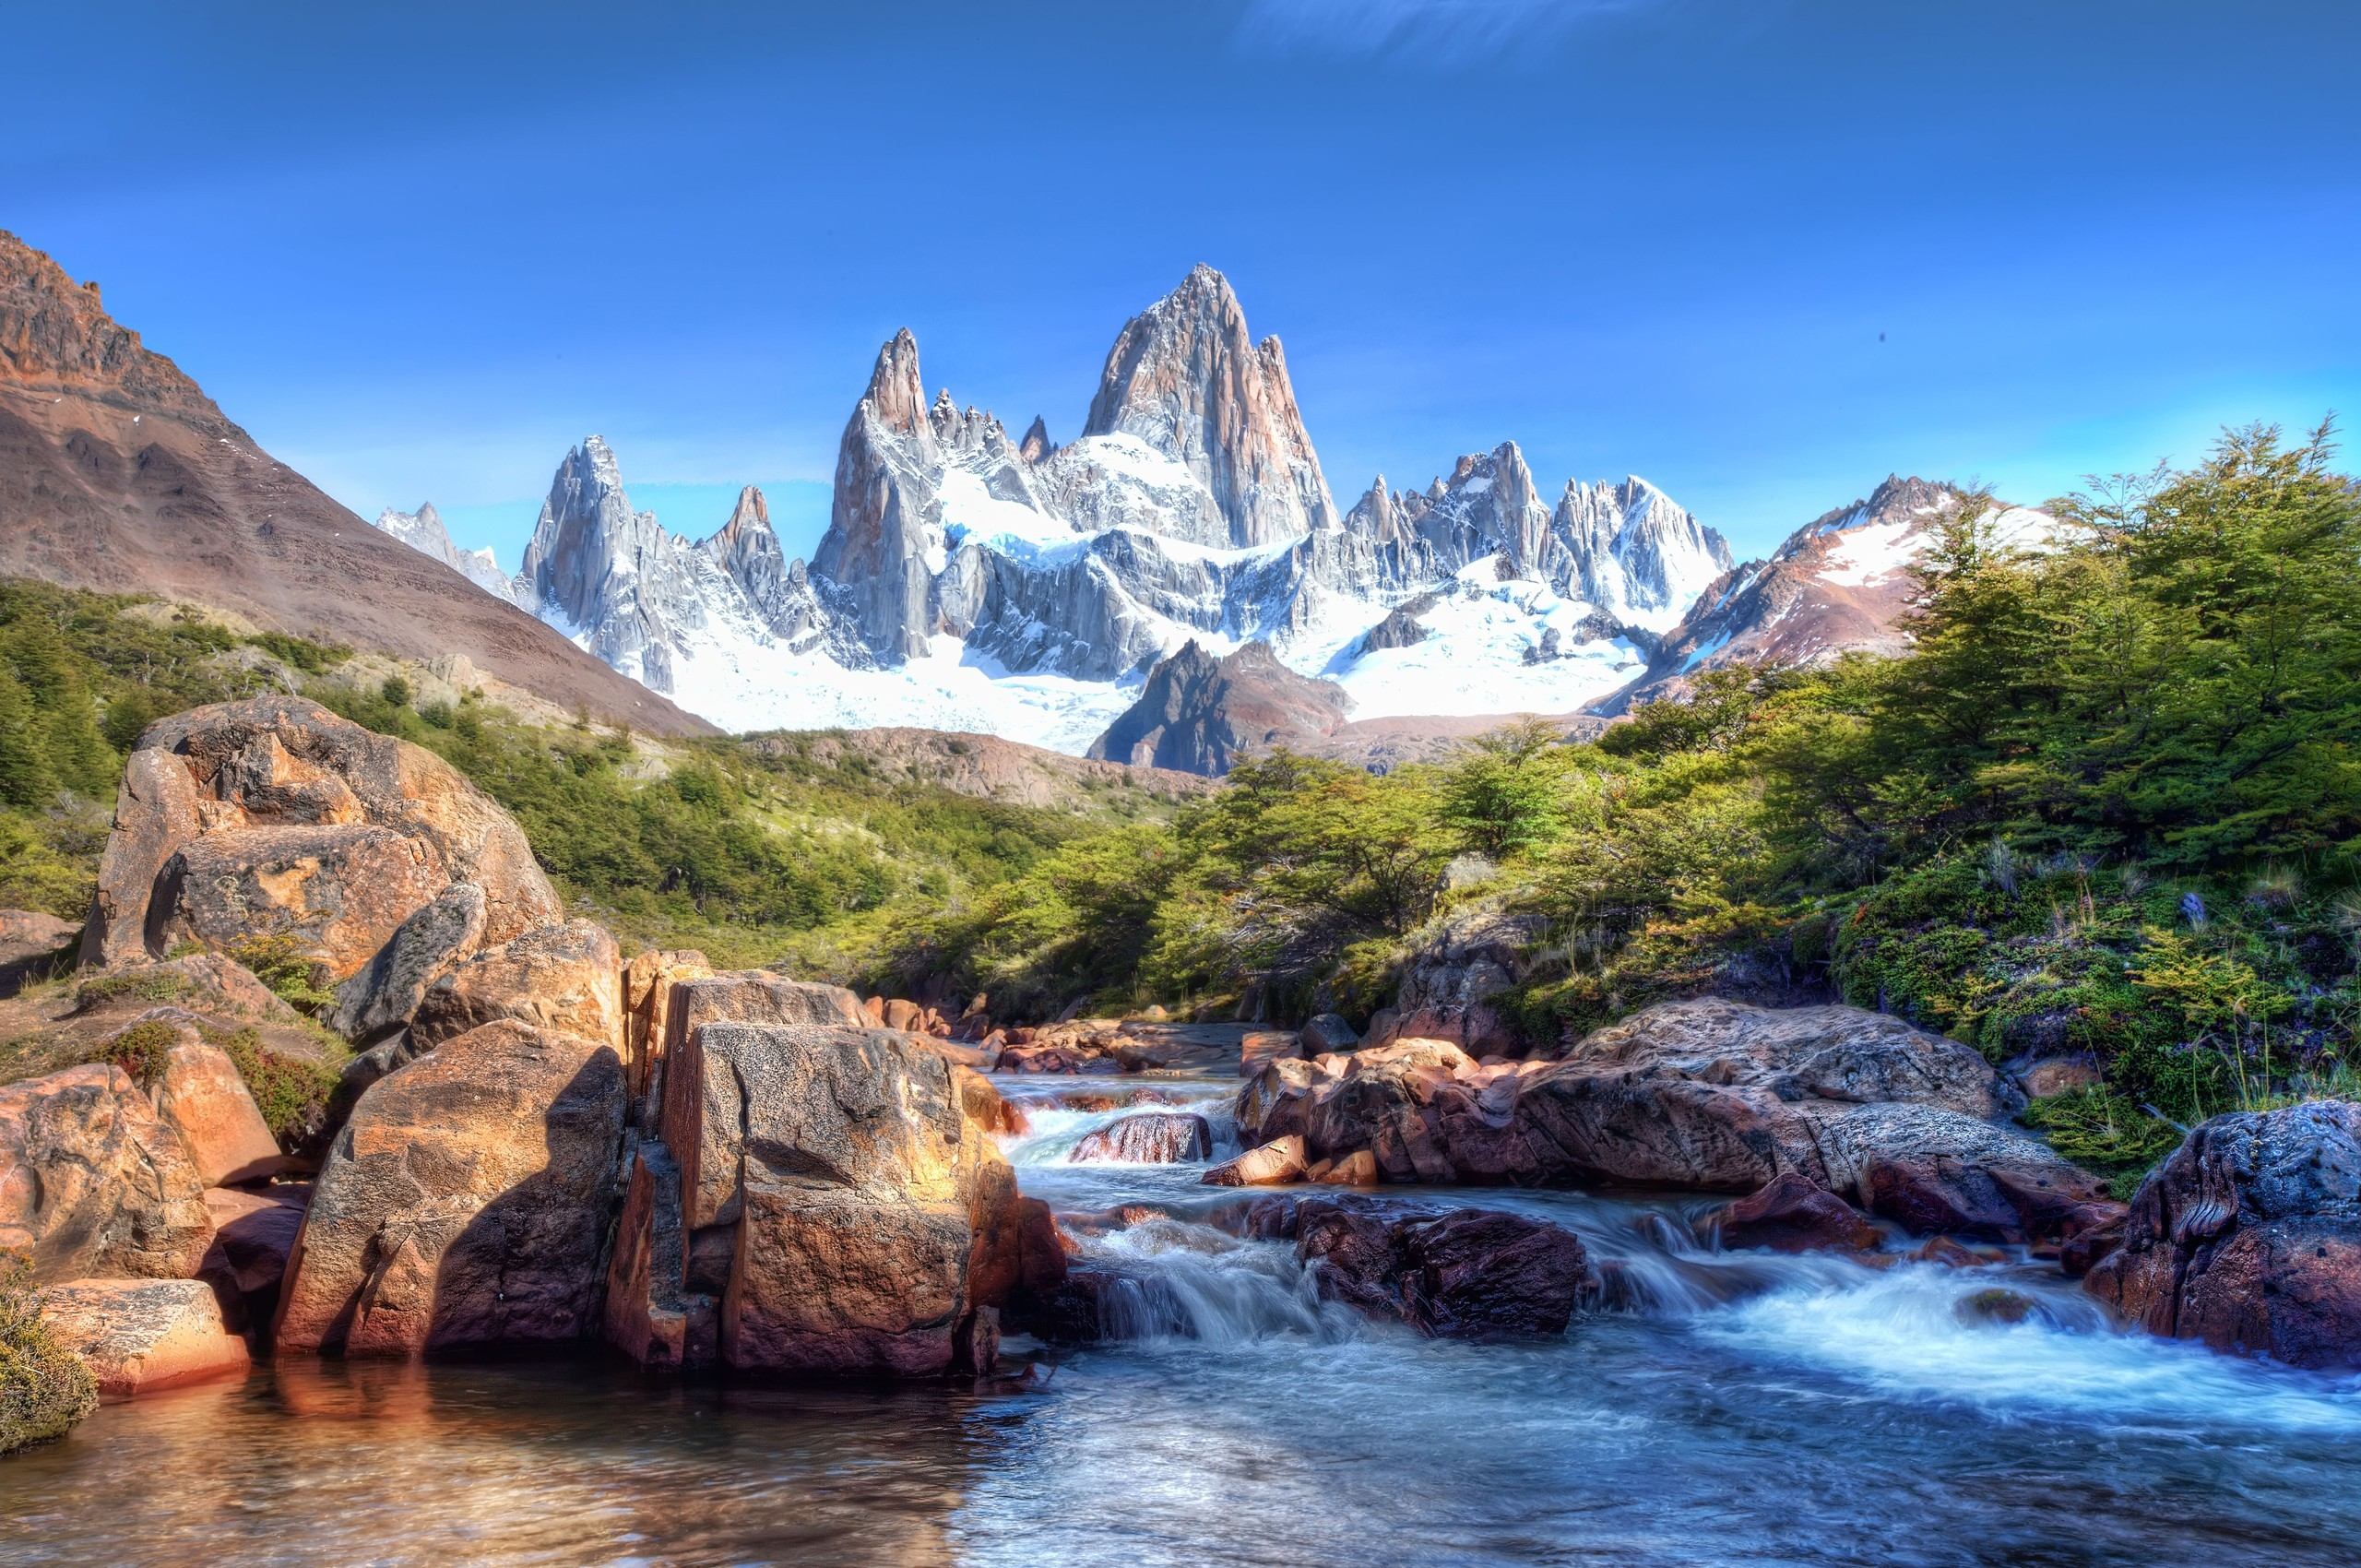 water Mountains Landscapes nature HD Wallpaper